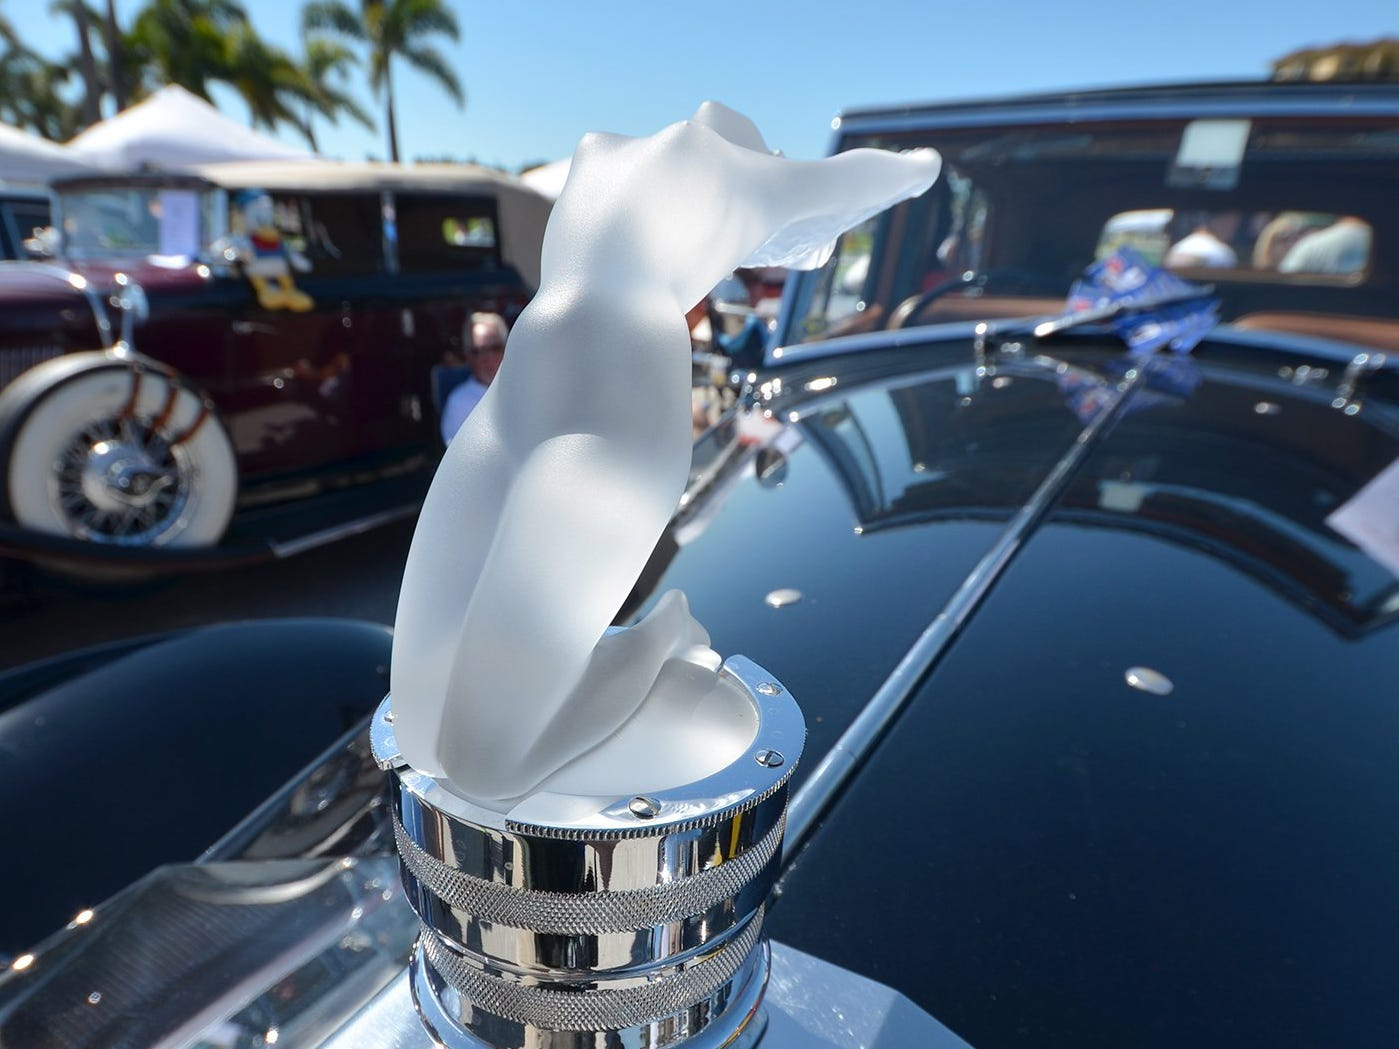 The Lalique hood ornament on Sal and JoAnn Campo's Rolls Royce lights up at night. The annual Kiwanis car show brought 170 collectible cars and thousands of car enthusiasts to Veterans Community Park on Marco Island Sunday.